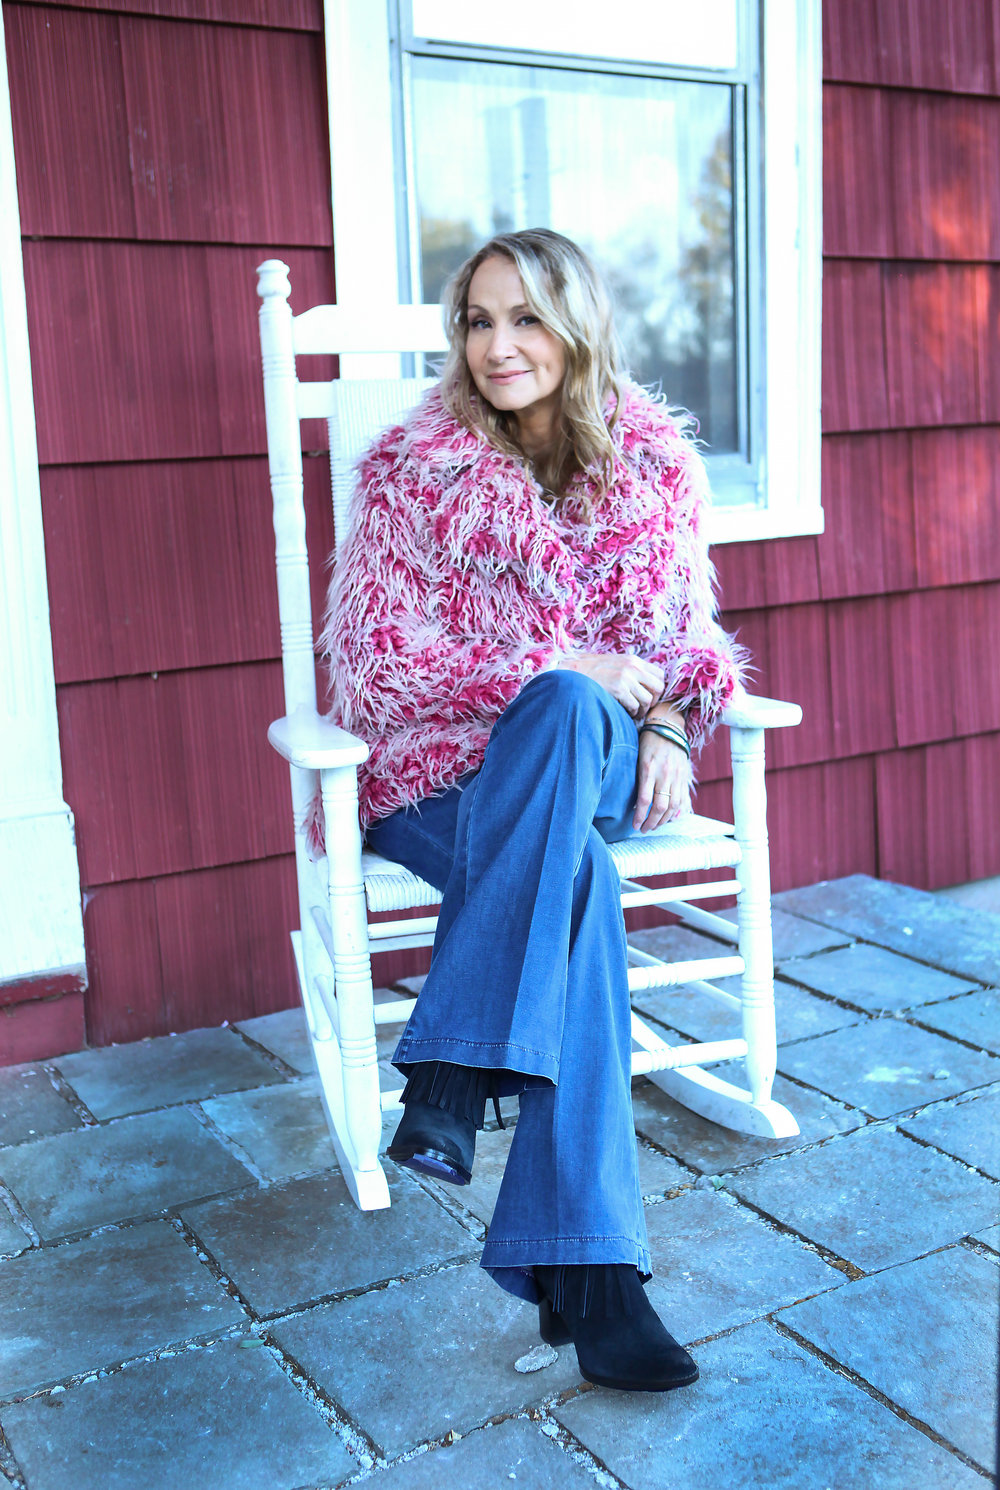 joan-osborne-choice0413hi-res.jpg